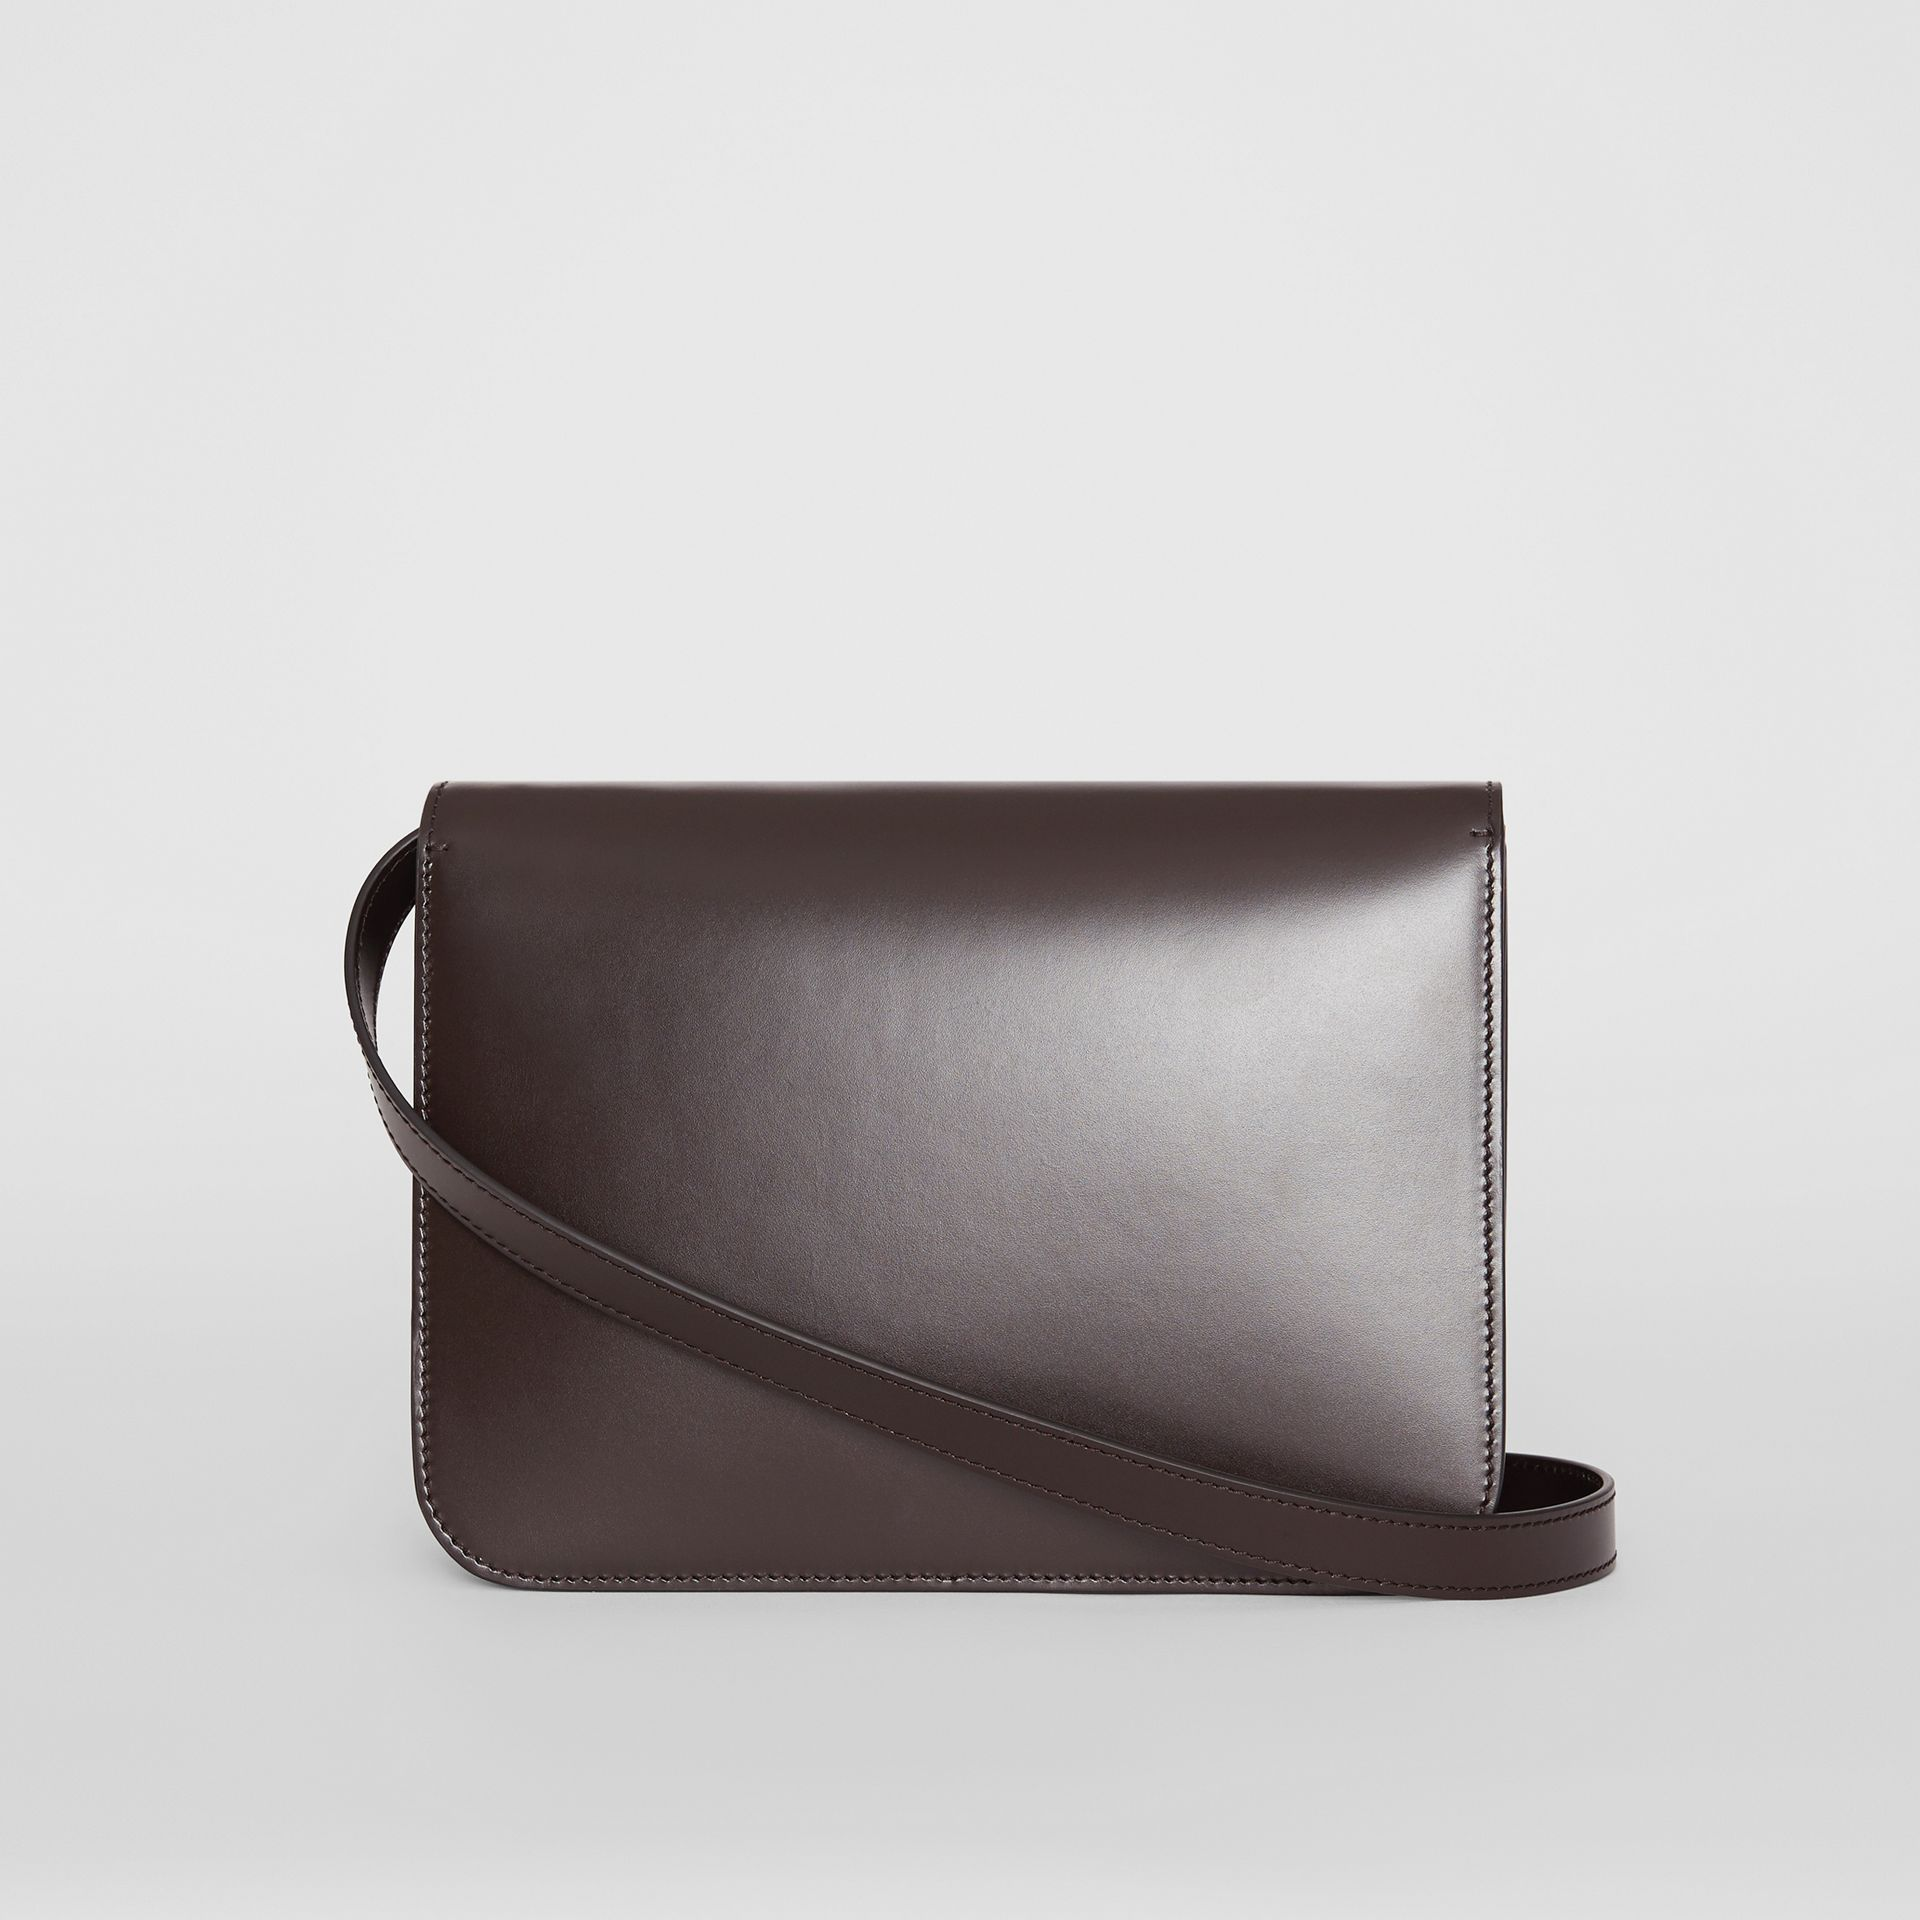 Medium Leather TB Bag in Coffee - Women | Burberry - gallery image 7